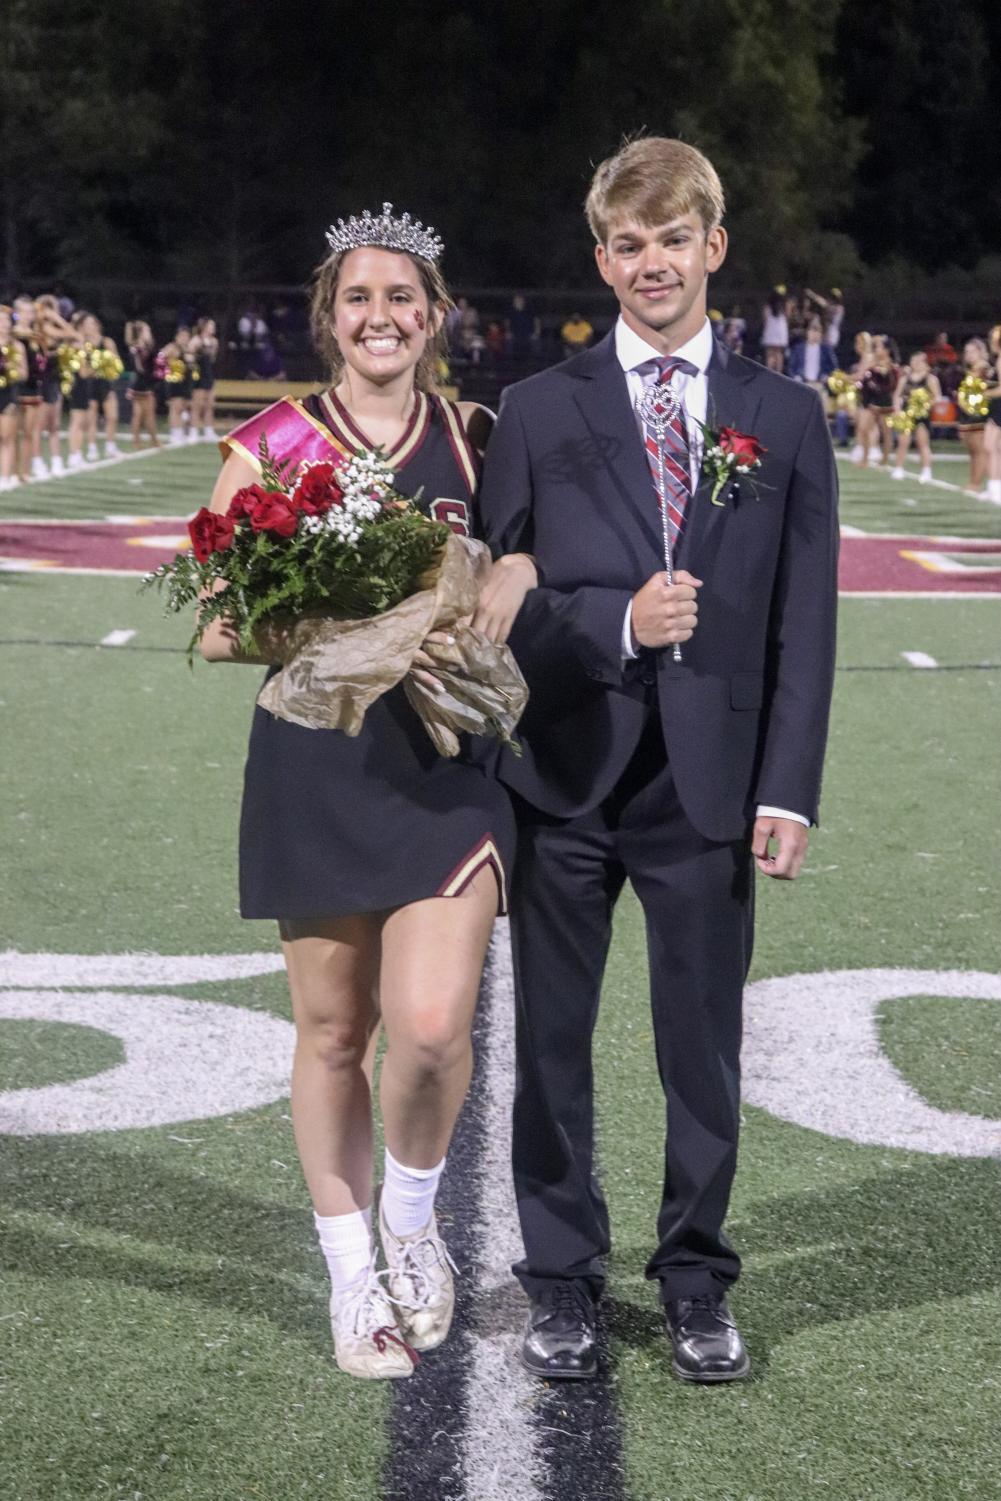 Queen Jeana Bellan and King Colby Desselles were crowned during half time of the Homecoming football game Friday night.